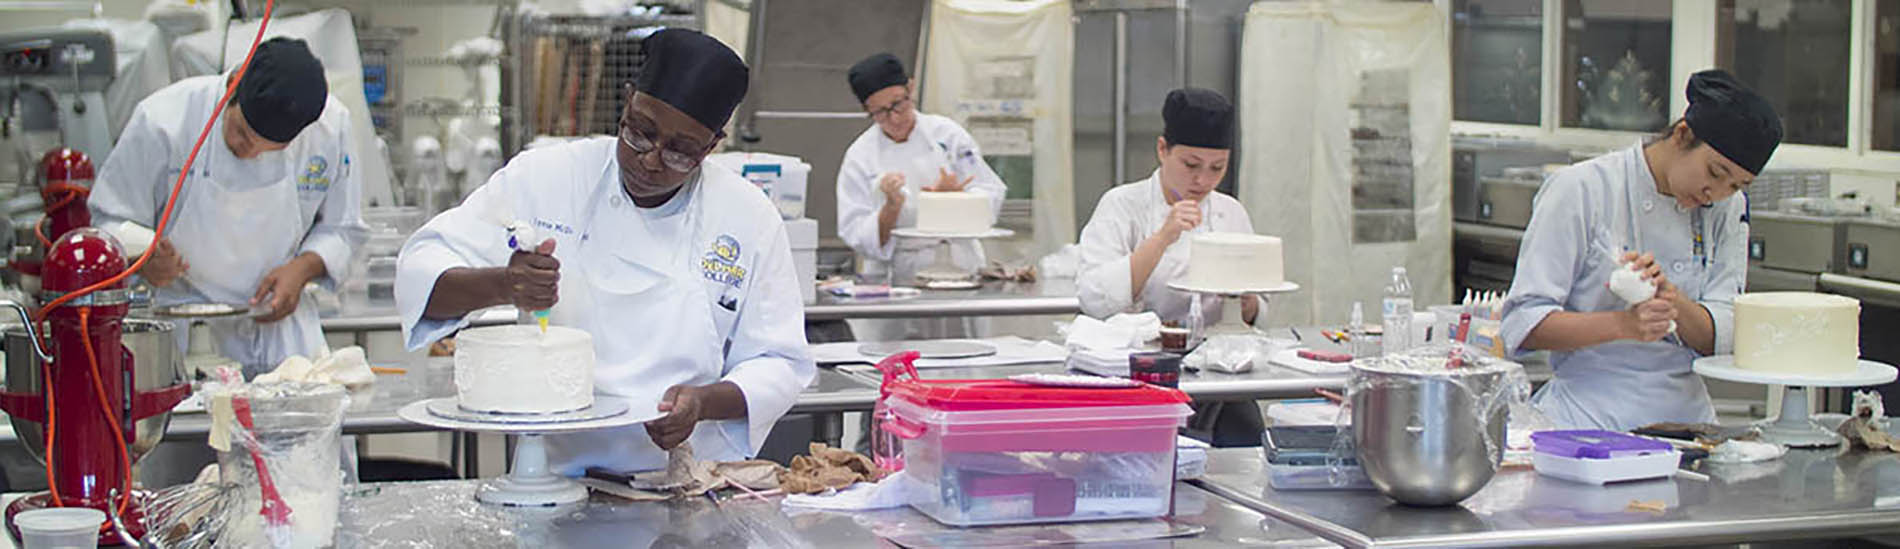 Culinary Arts students preparing cakes